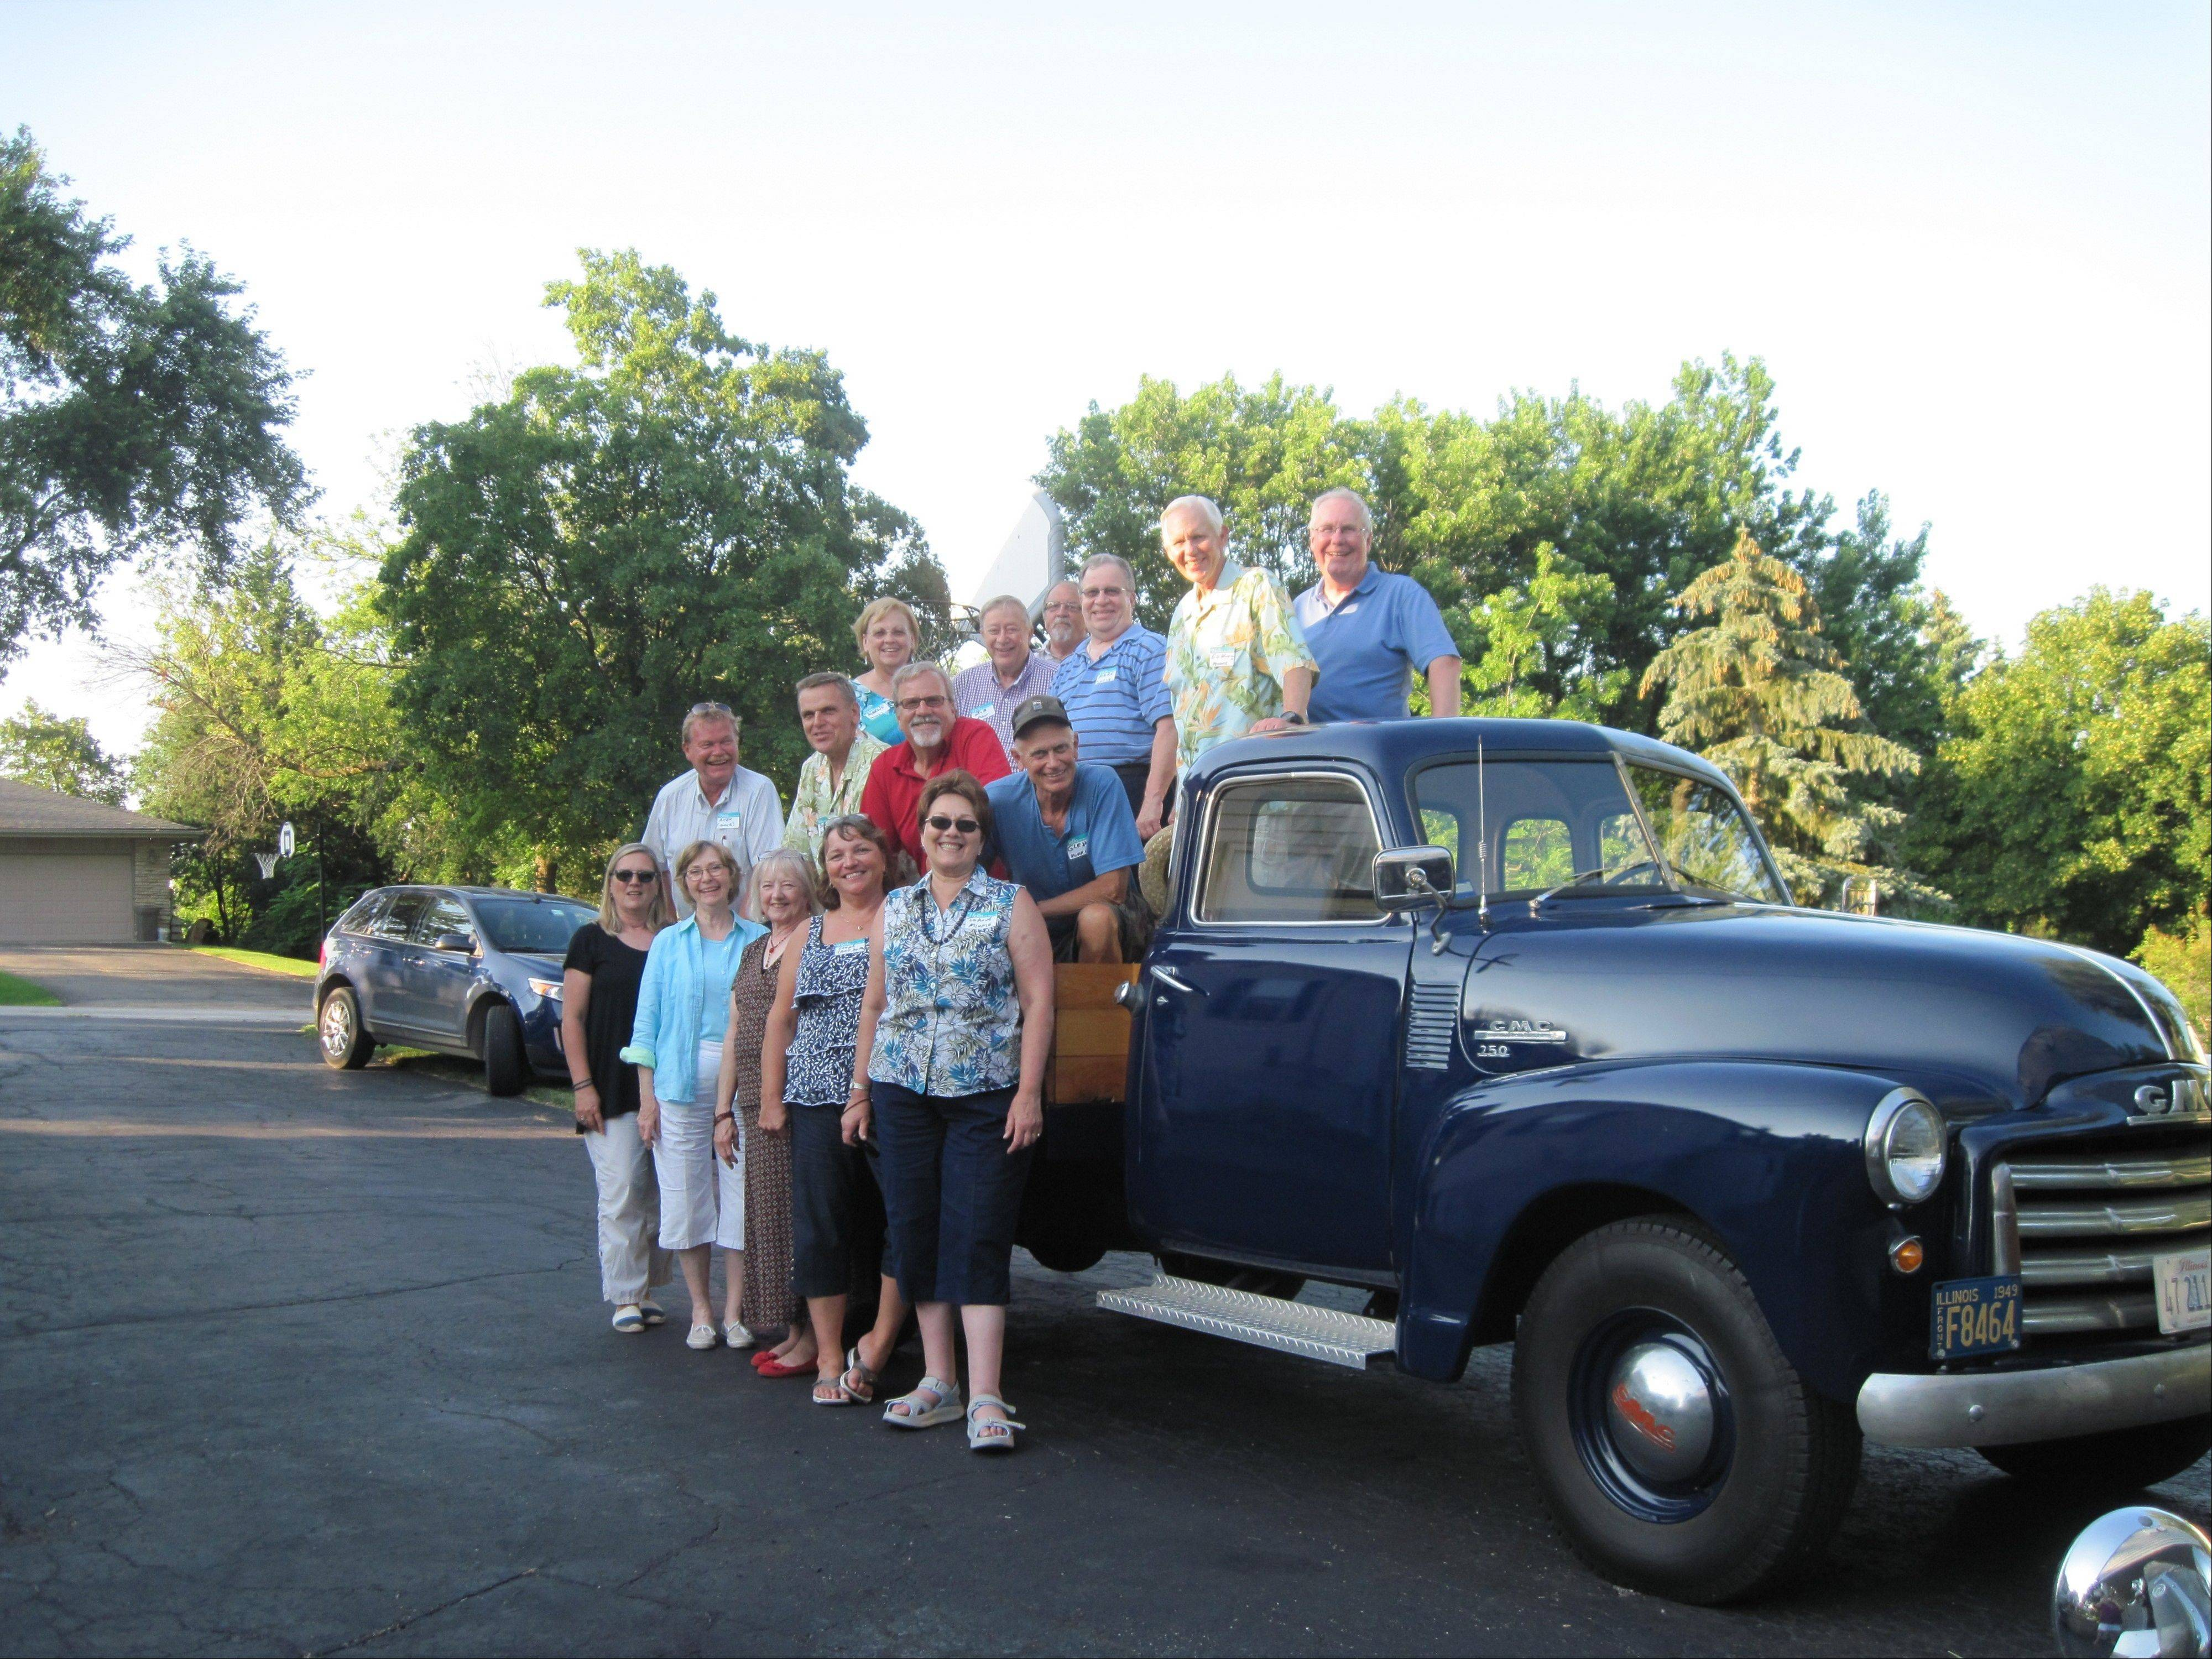 The Haemker Family pose at their family reunion with a 1949 GMC truck, which Chuck Anderson of Palatine restored.